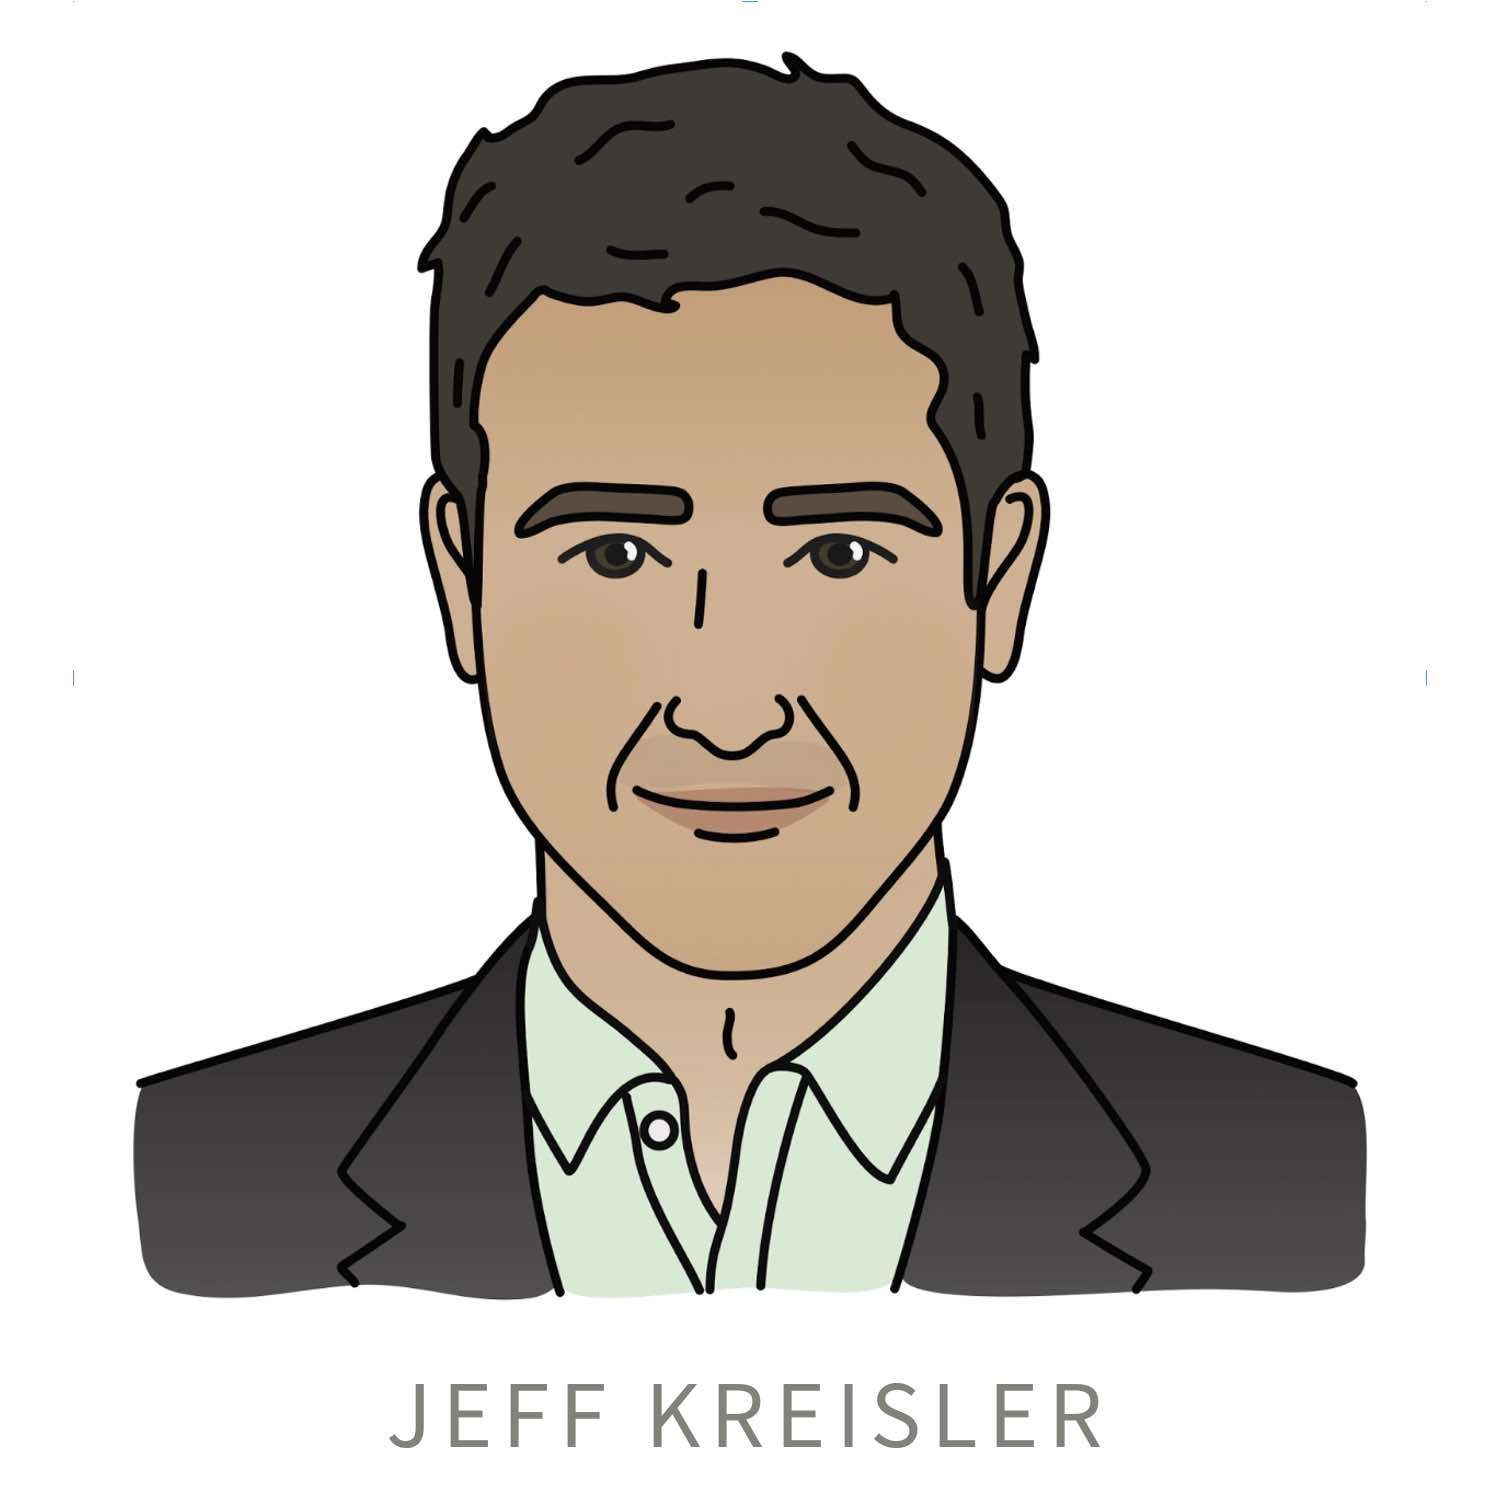 Jeff Kreisler Intellcts.co